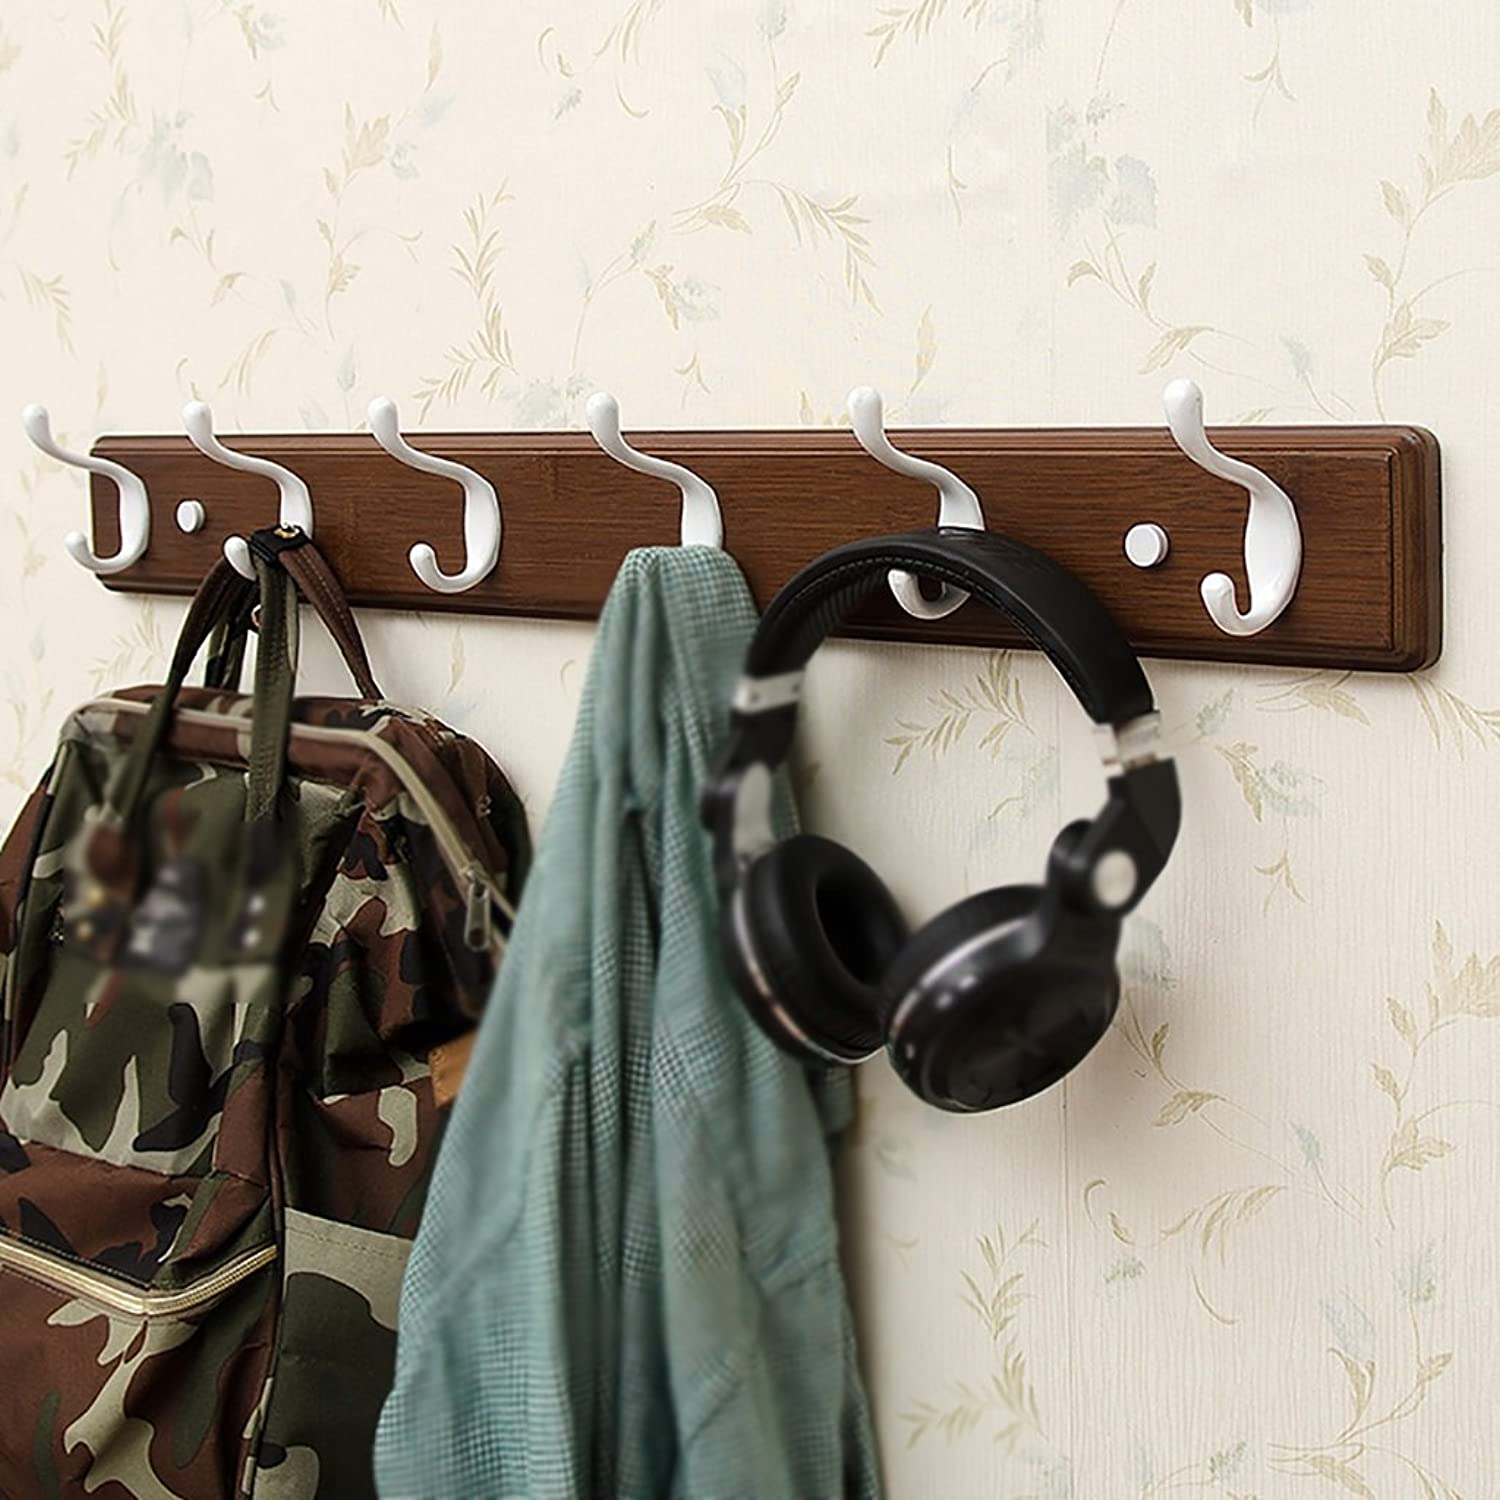 LXLA- Shelf Hangers Coat Rack Hook Up Double Wood Bamboo Wall-mounted White,Brown,Black (Available 3,4,5,6,Hooks,35.5 48.2 61 73.8  7.8  8 cm) ( color   Vintage color , Size   6 hooks )